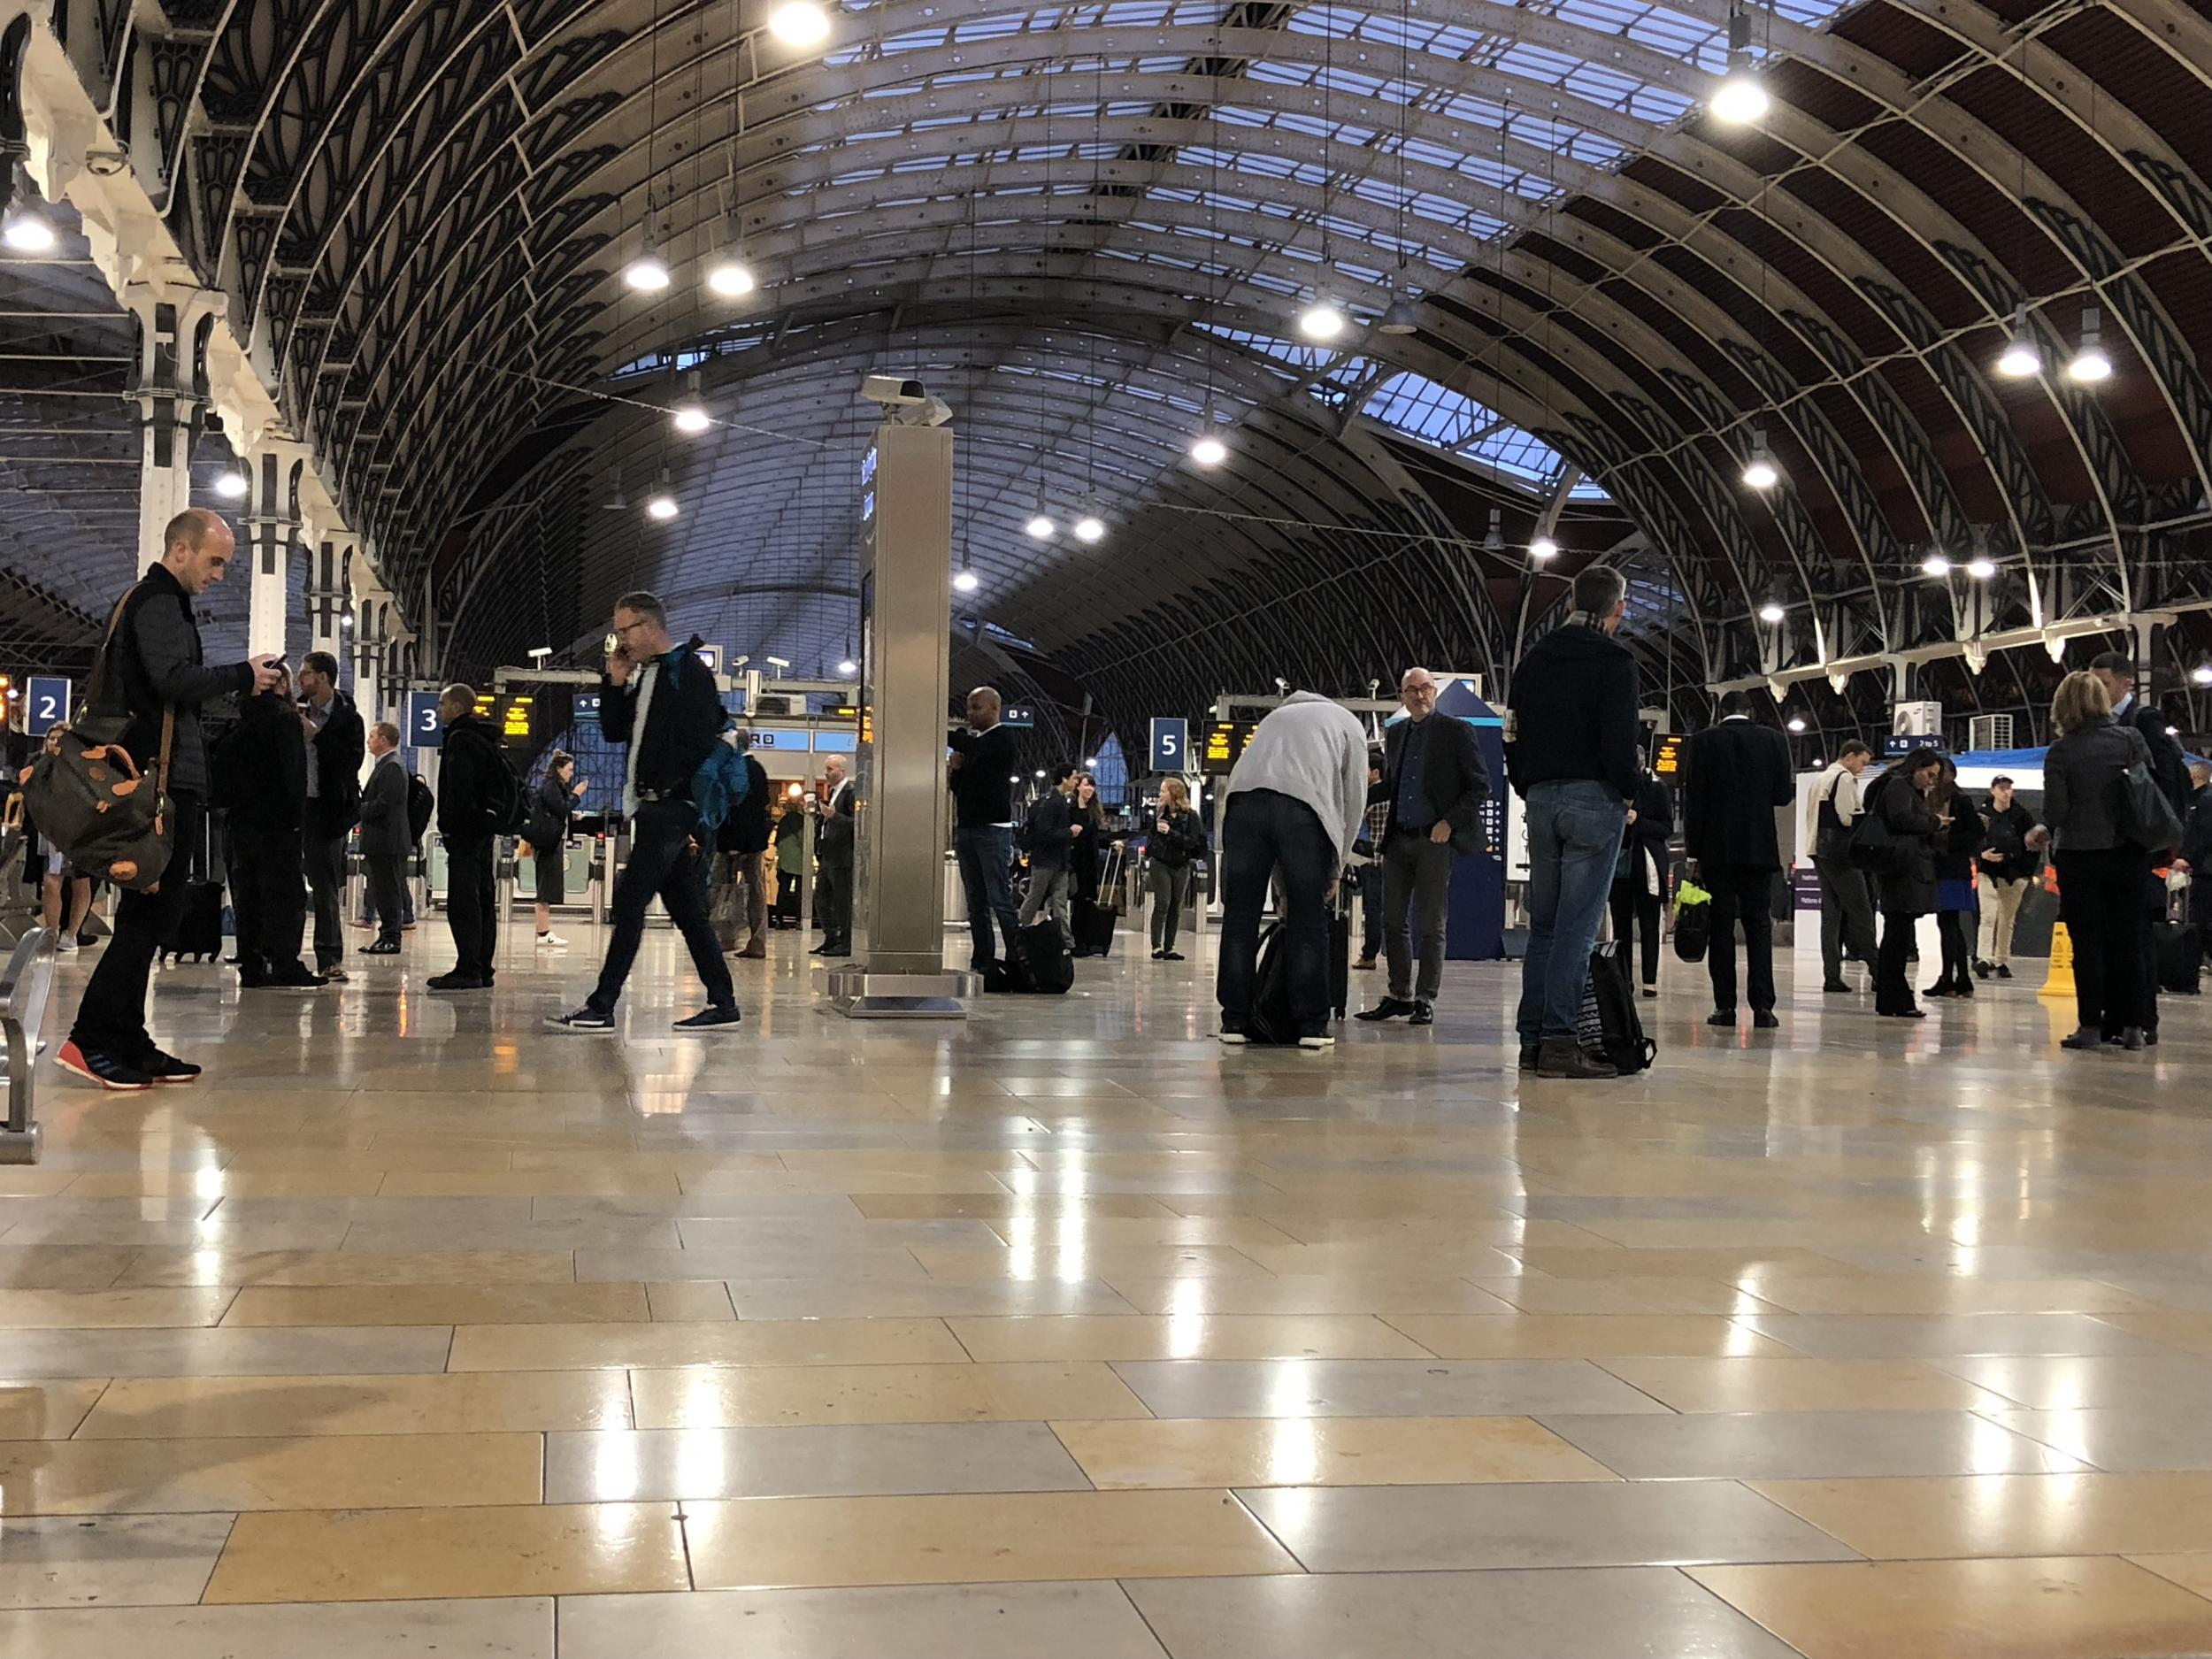 Rail passenger wins £28,000 after 'possibly' slipping on pigeon droppings at London station